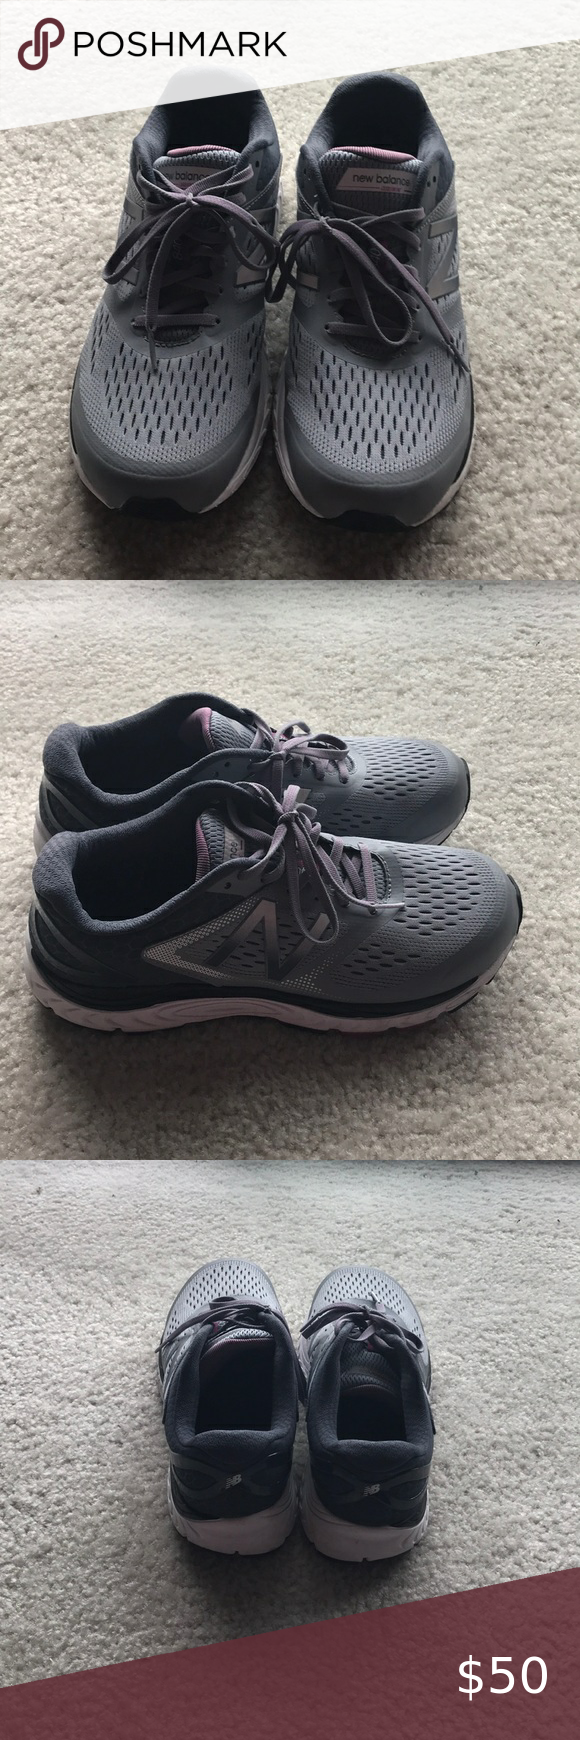 New Balance Running shoes 840G04 size